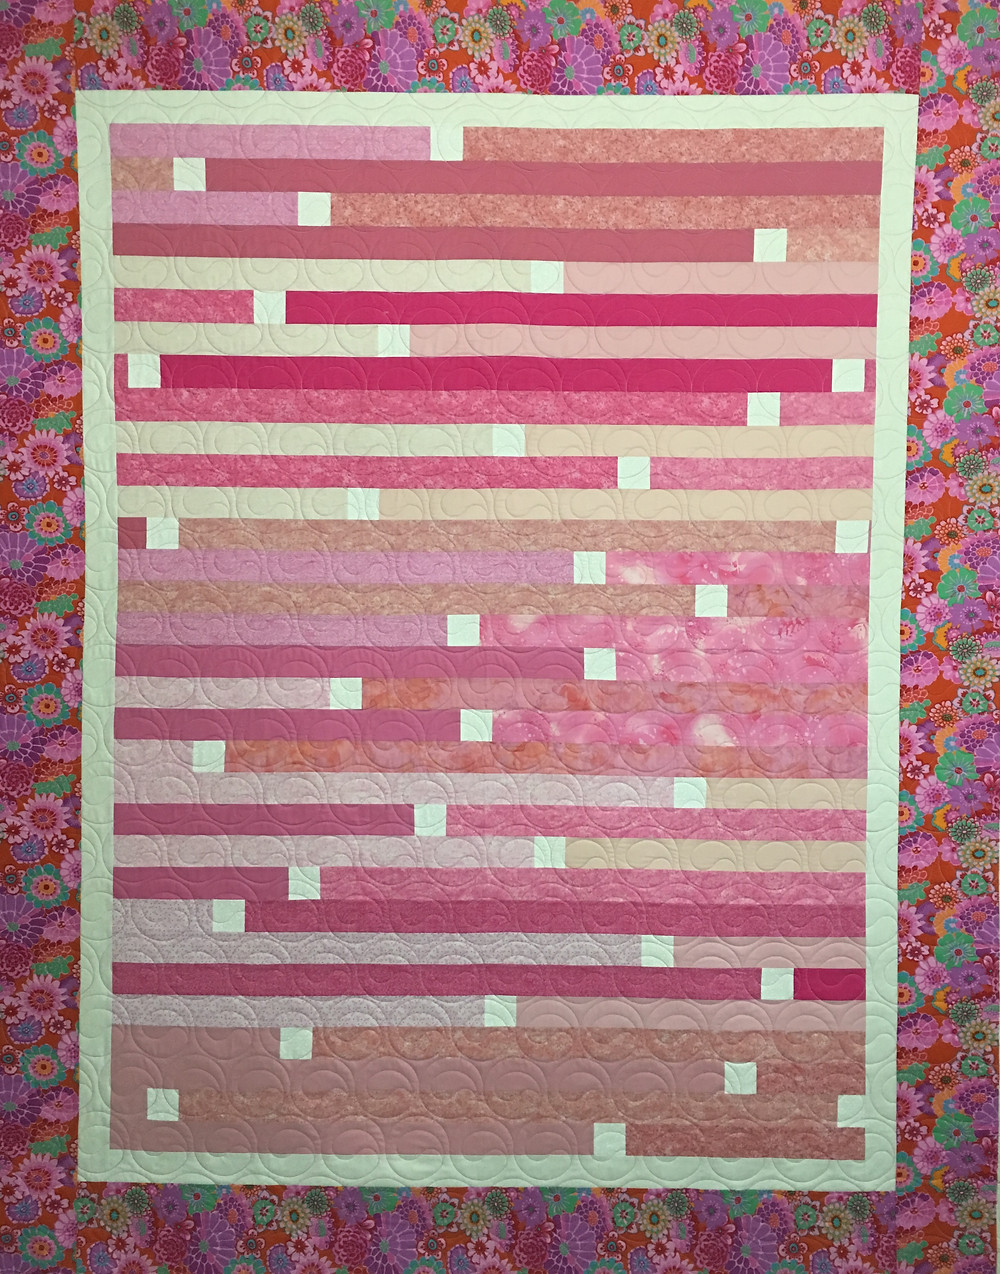 Jelly Roll Race 2 Quilt by Lynne Capps